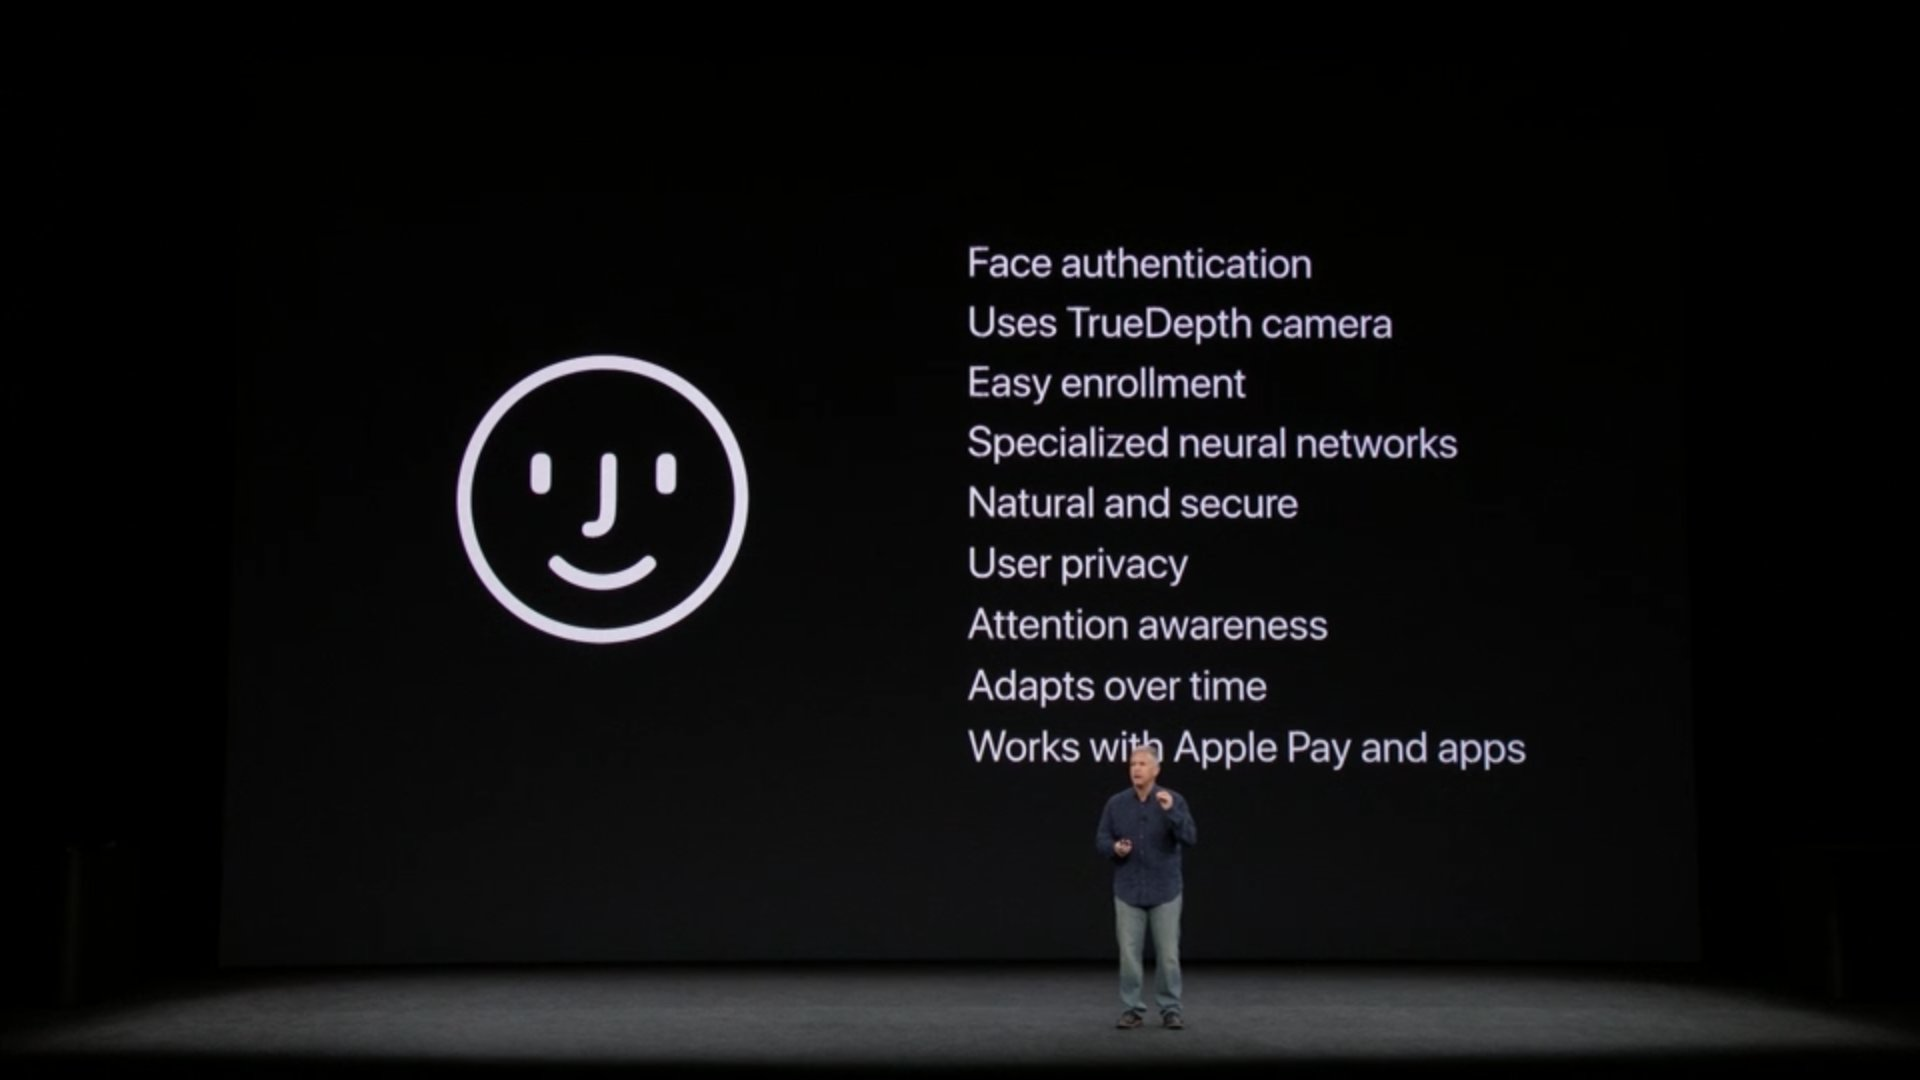 All of the details on Apple's new facial recognition software, FaceID. #AppleEvent https://t.co/yM82pYt6B1